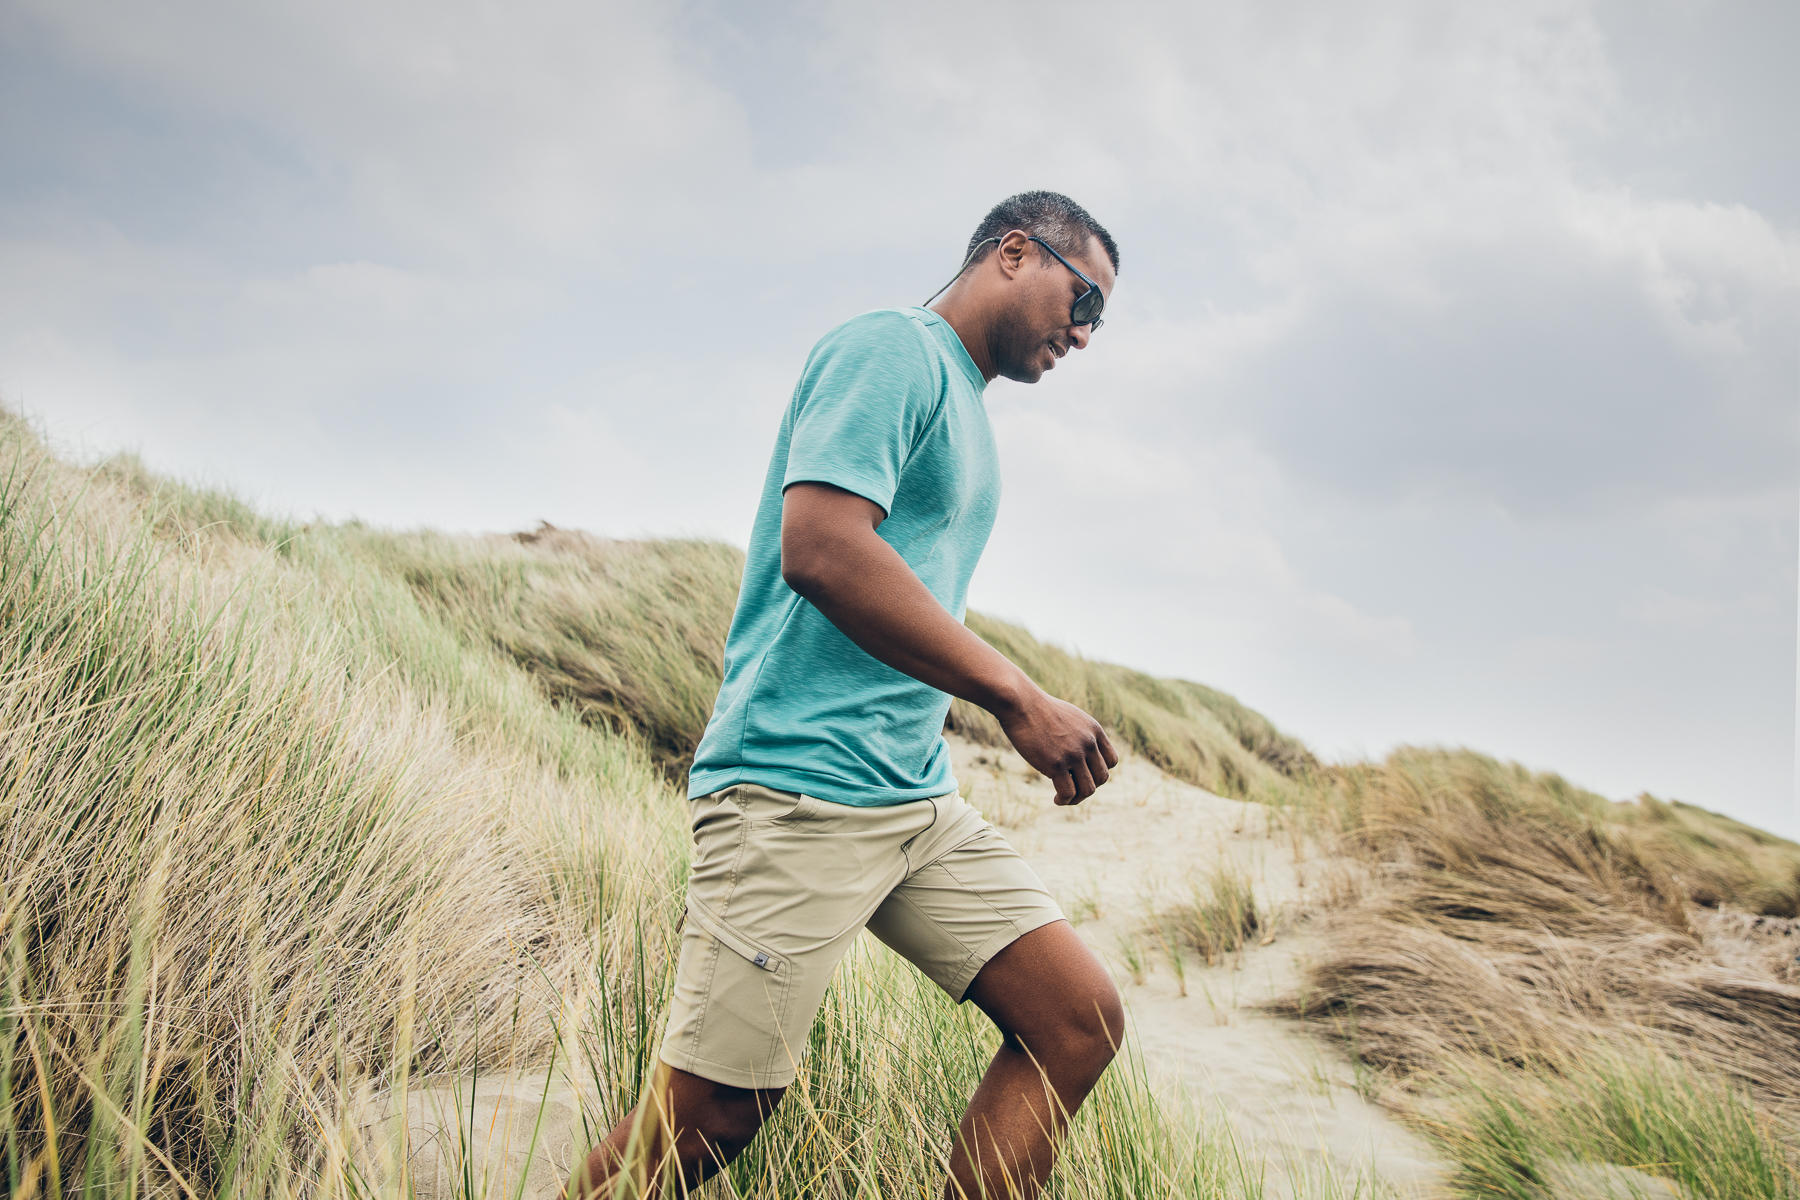 Royal Robbins - Lifestyle Advertising Hiker on Beach